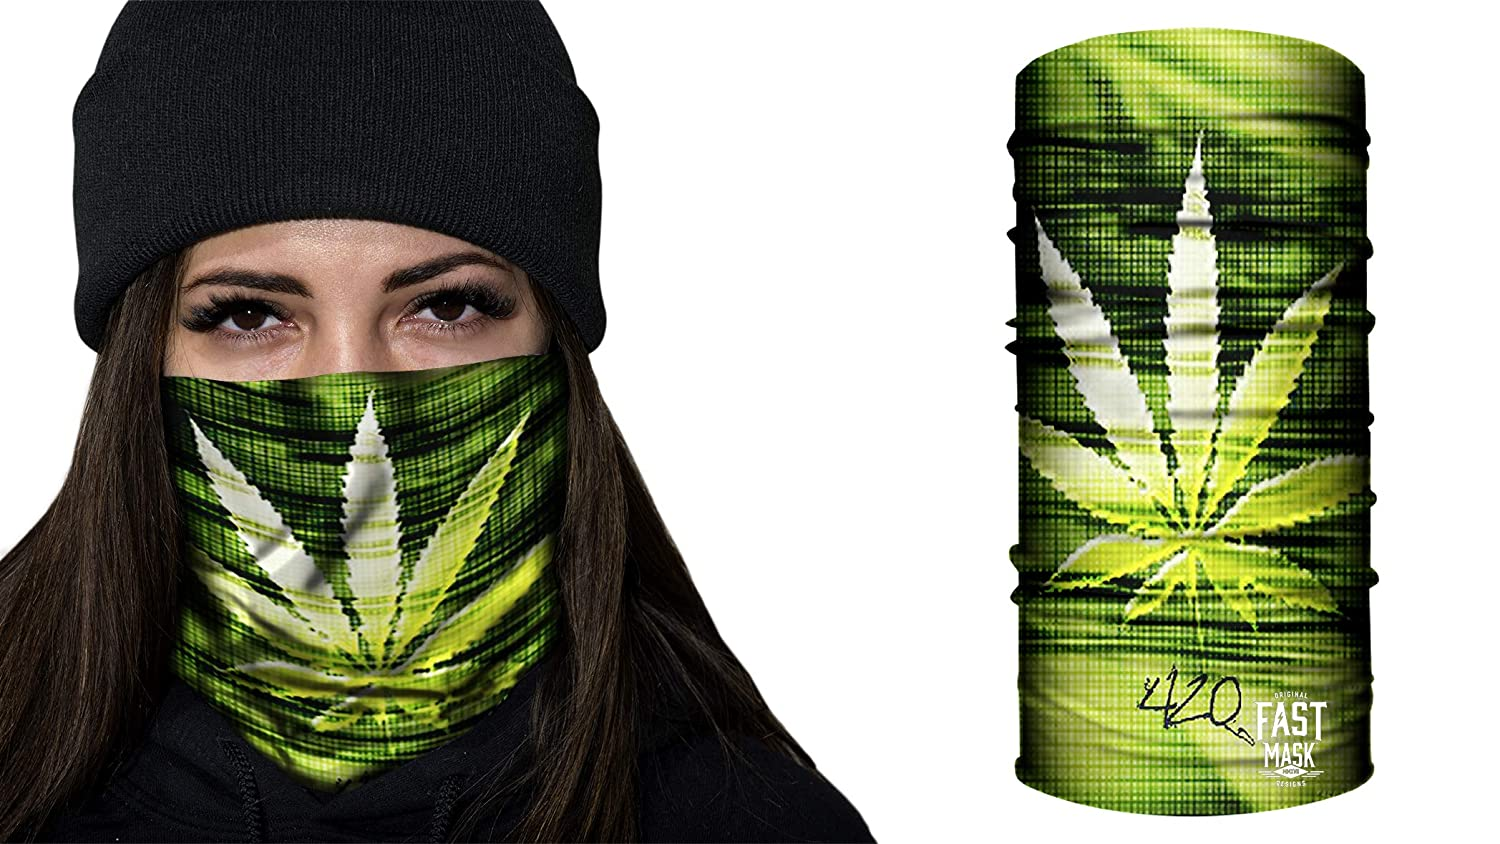 Fast Mask Face Shield Unisex - 420 Delight